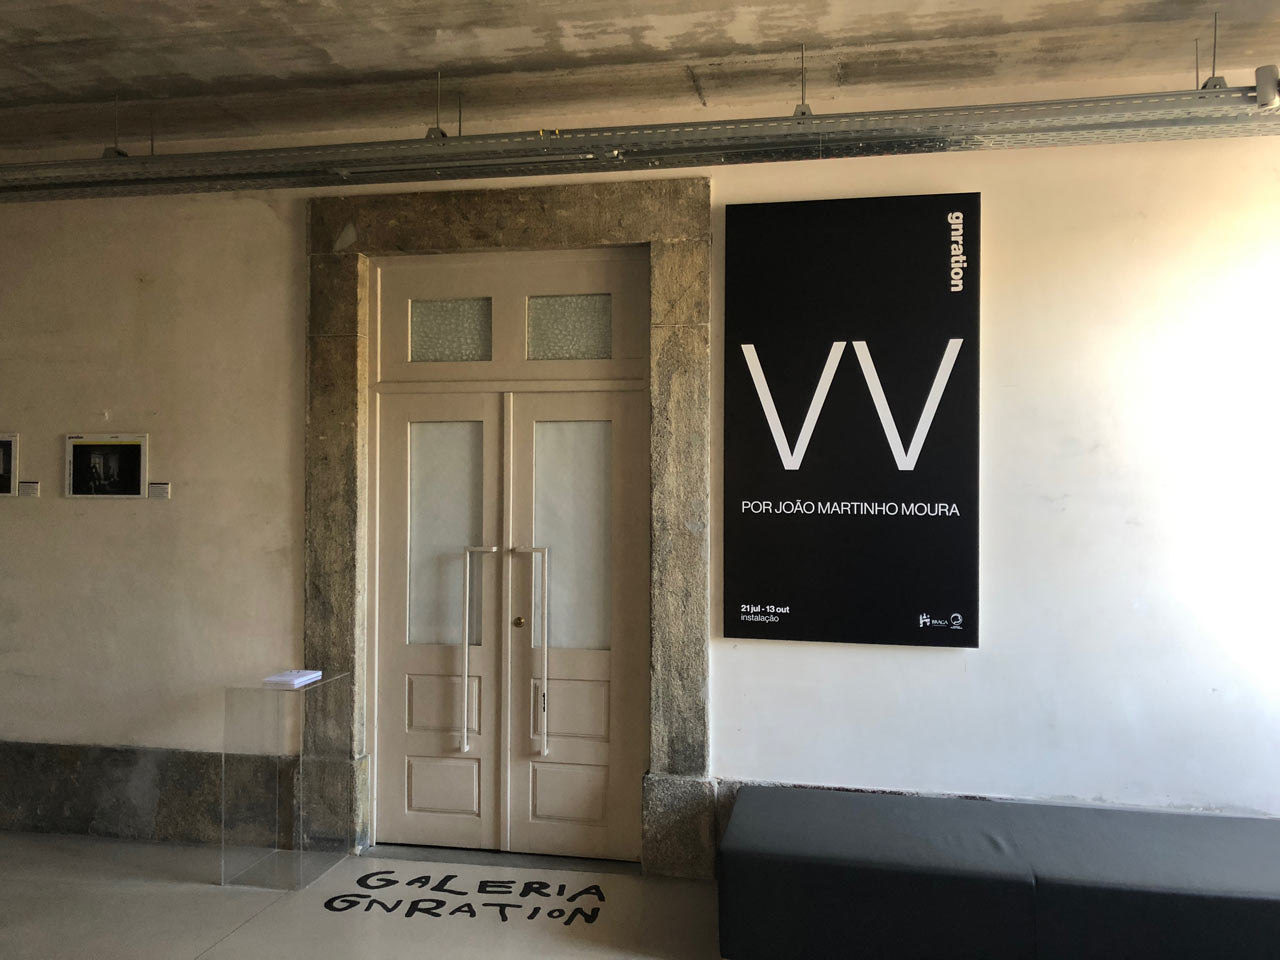 VV (João Martinho Moura. 2018) exhibition at gnration gallery, Braga-media-arts